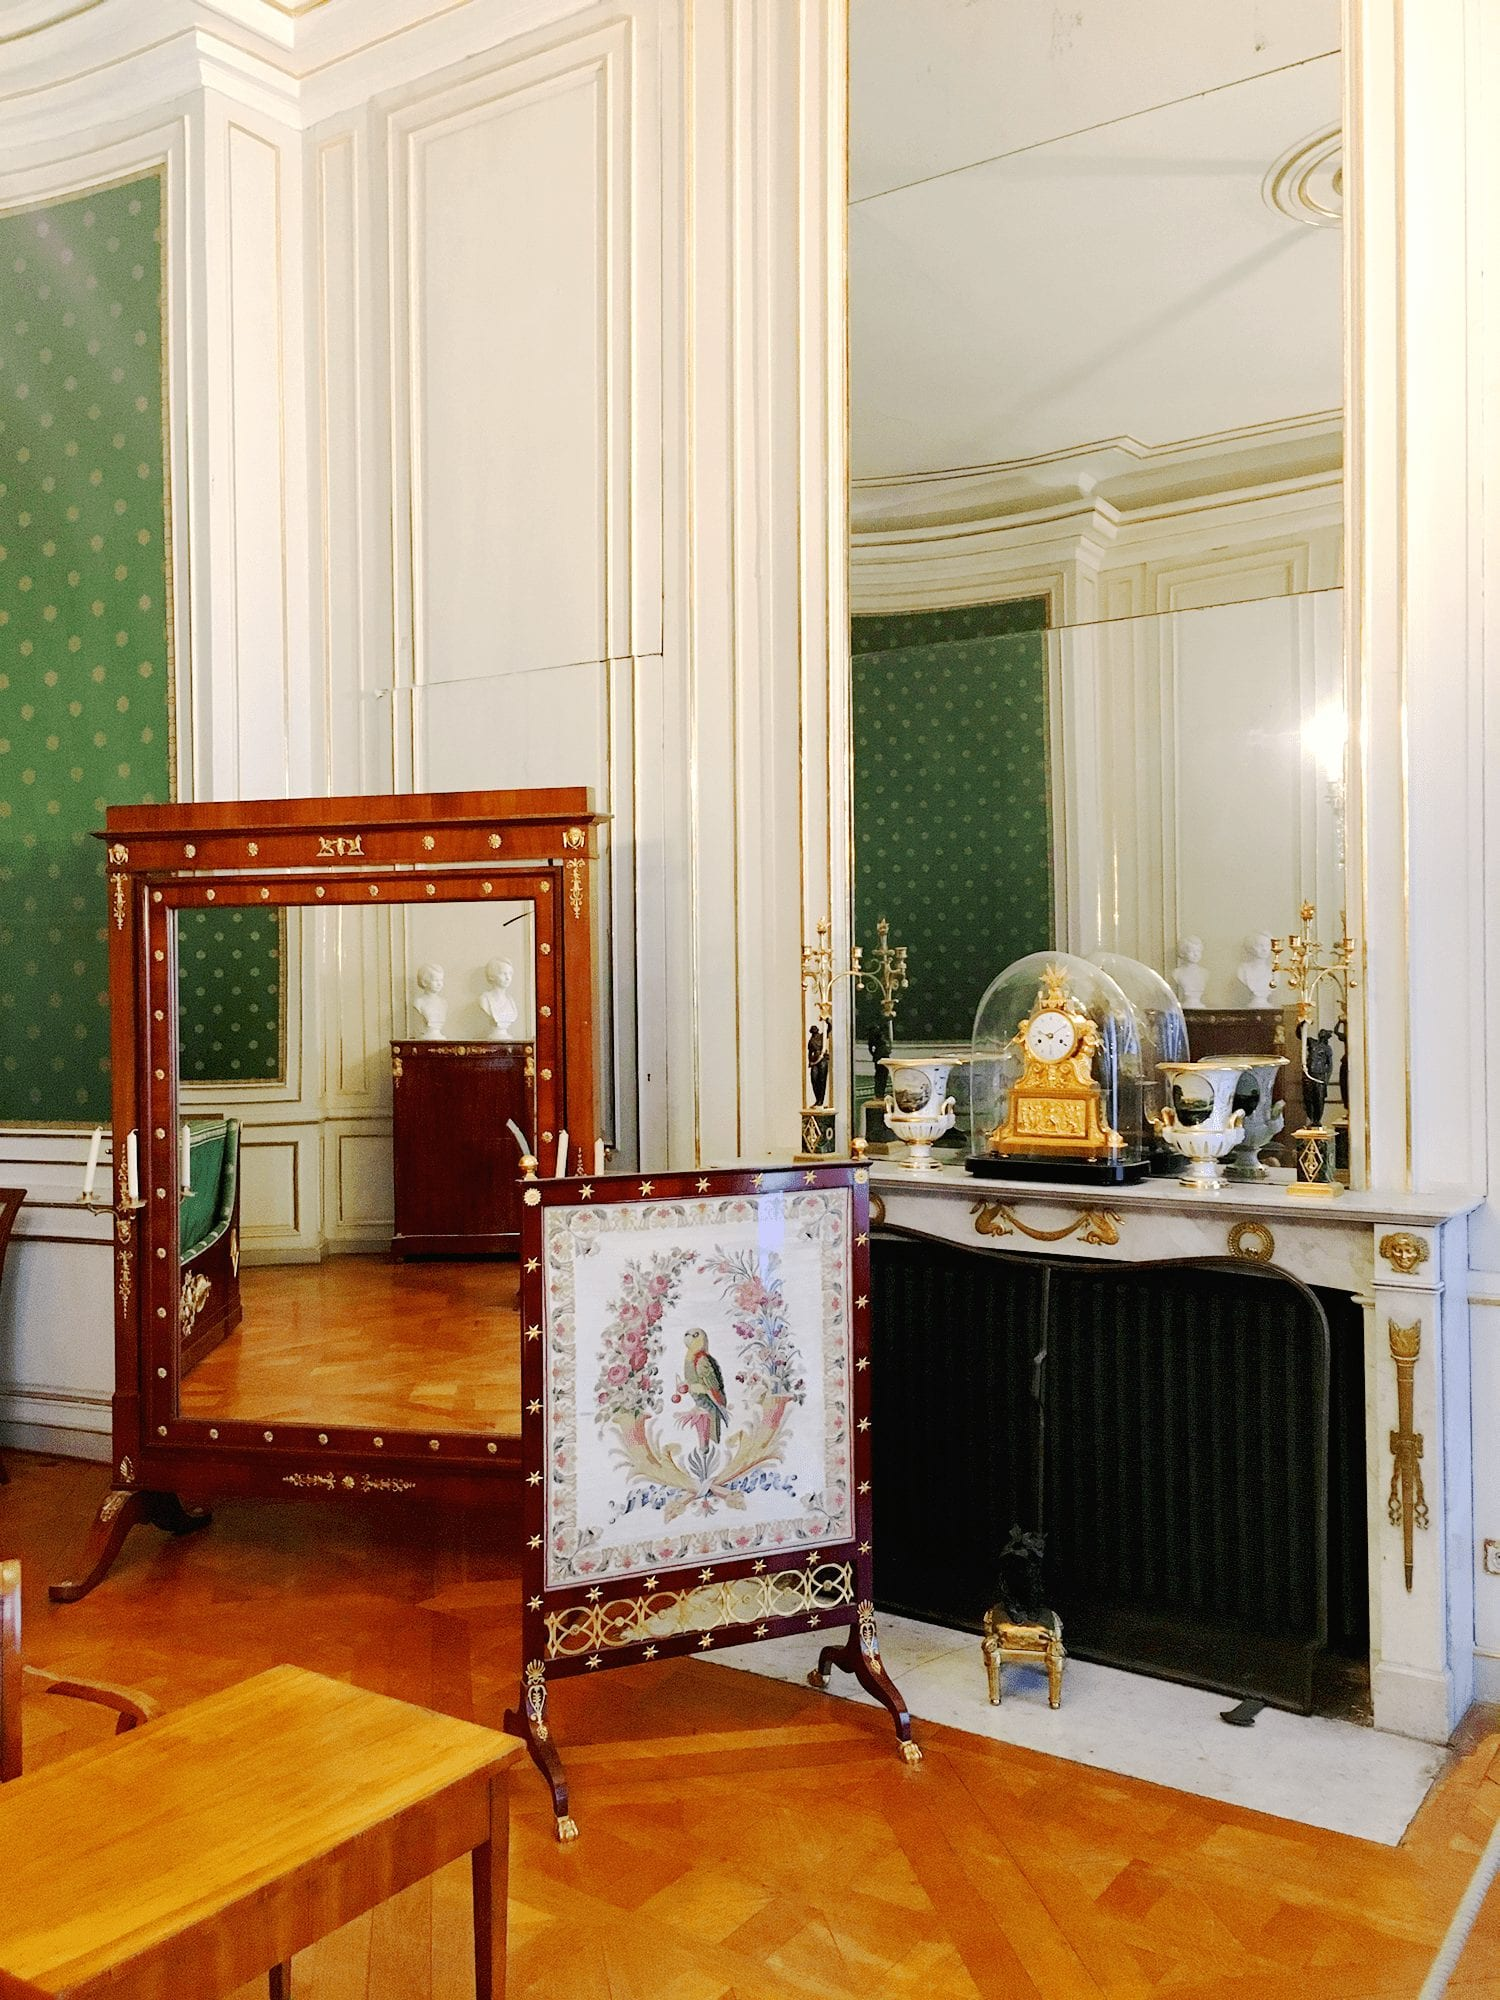 The Queen's Bedchamber: Birthplace of King Ludwig II